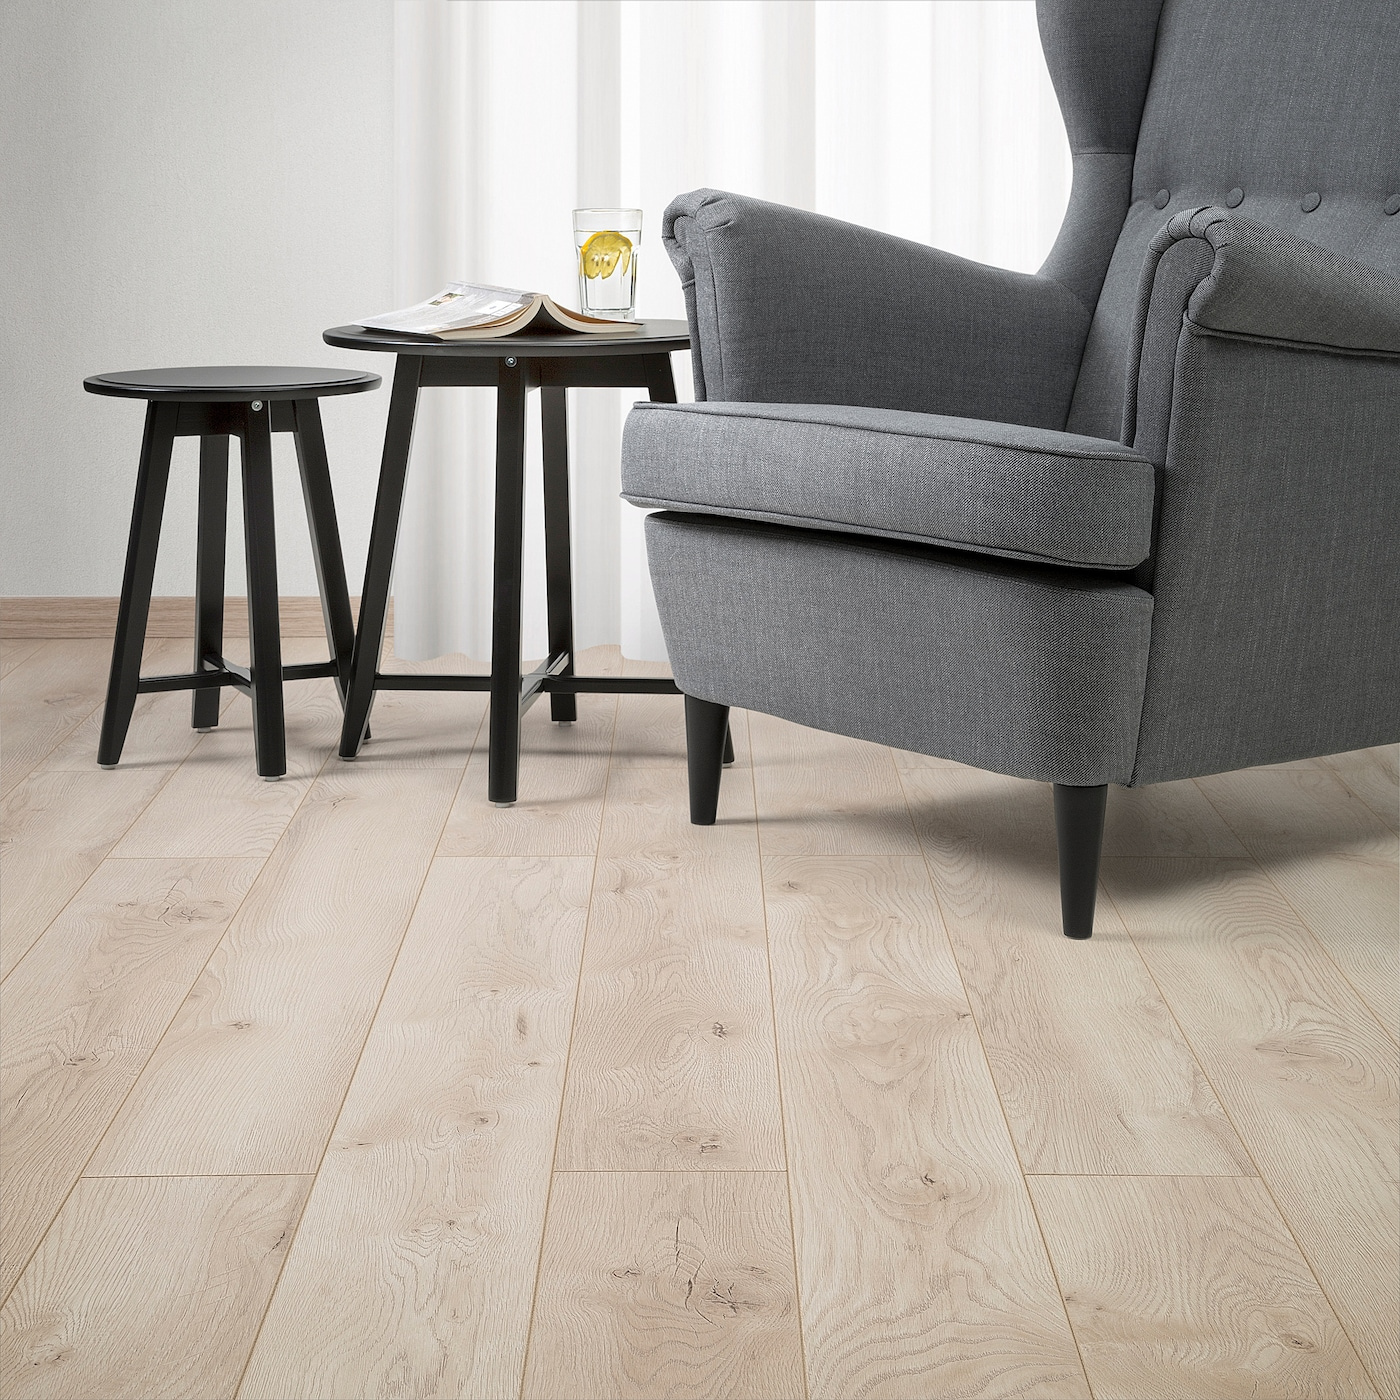 GOLV Laminated flooring - light oak effect - IKEA